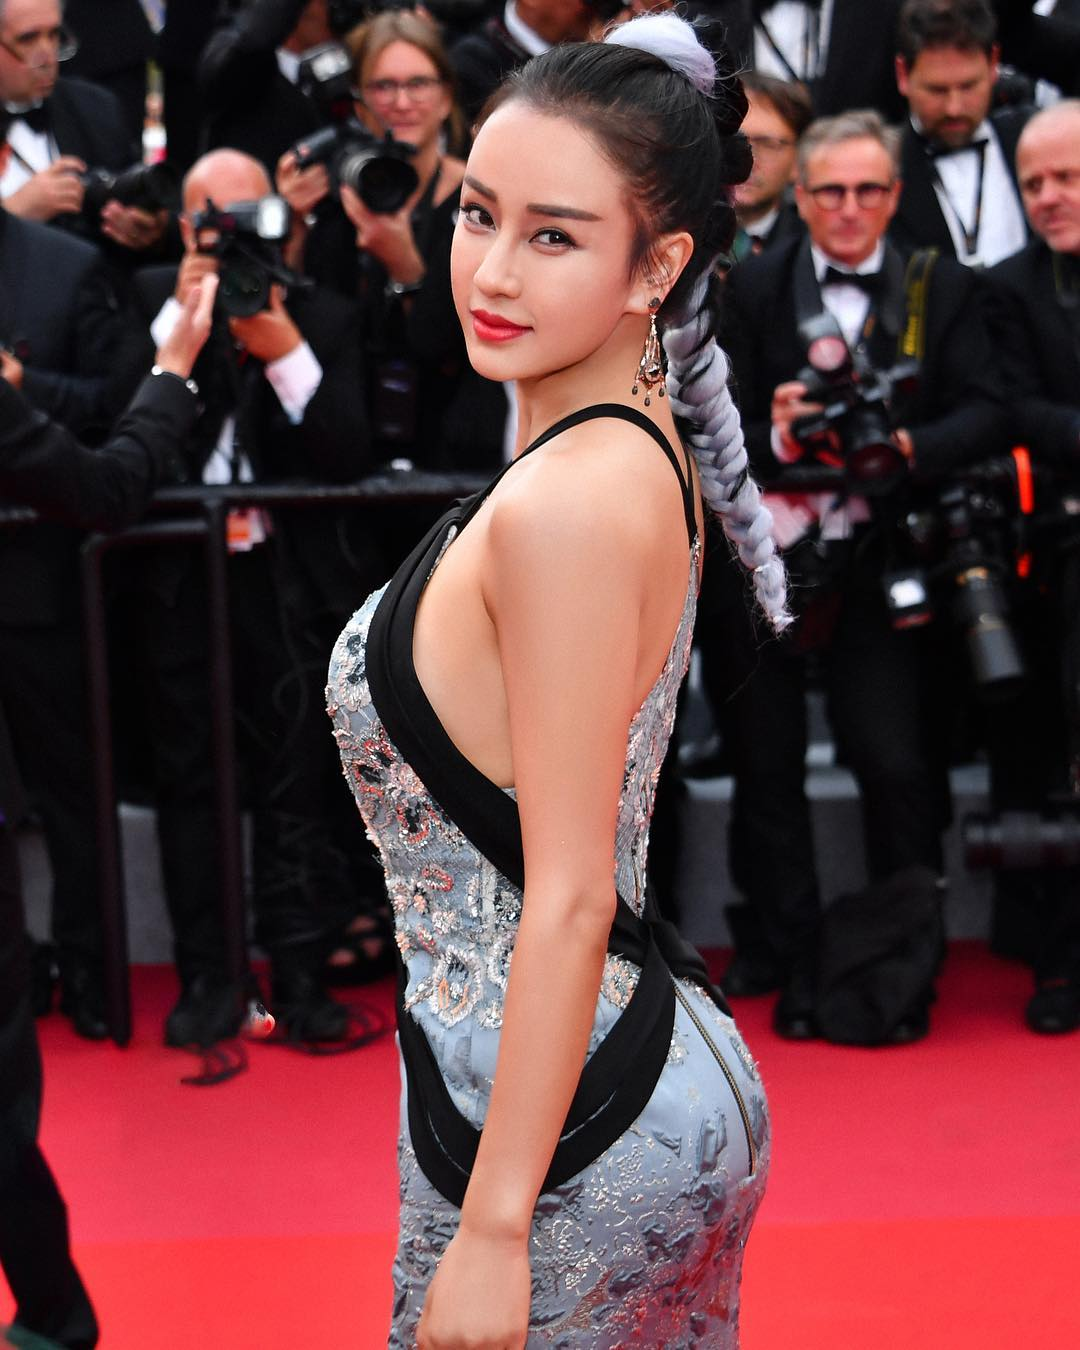 tuyet chieu co than hinh nay no cua co giao dan toc o cannes 2019 hinh anh 4